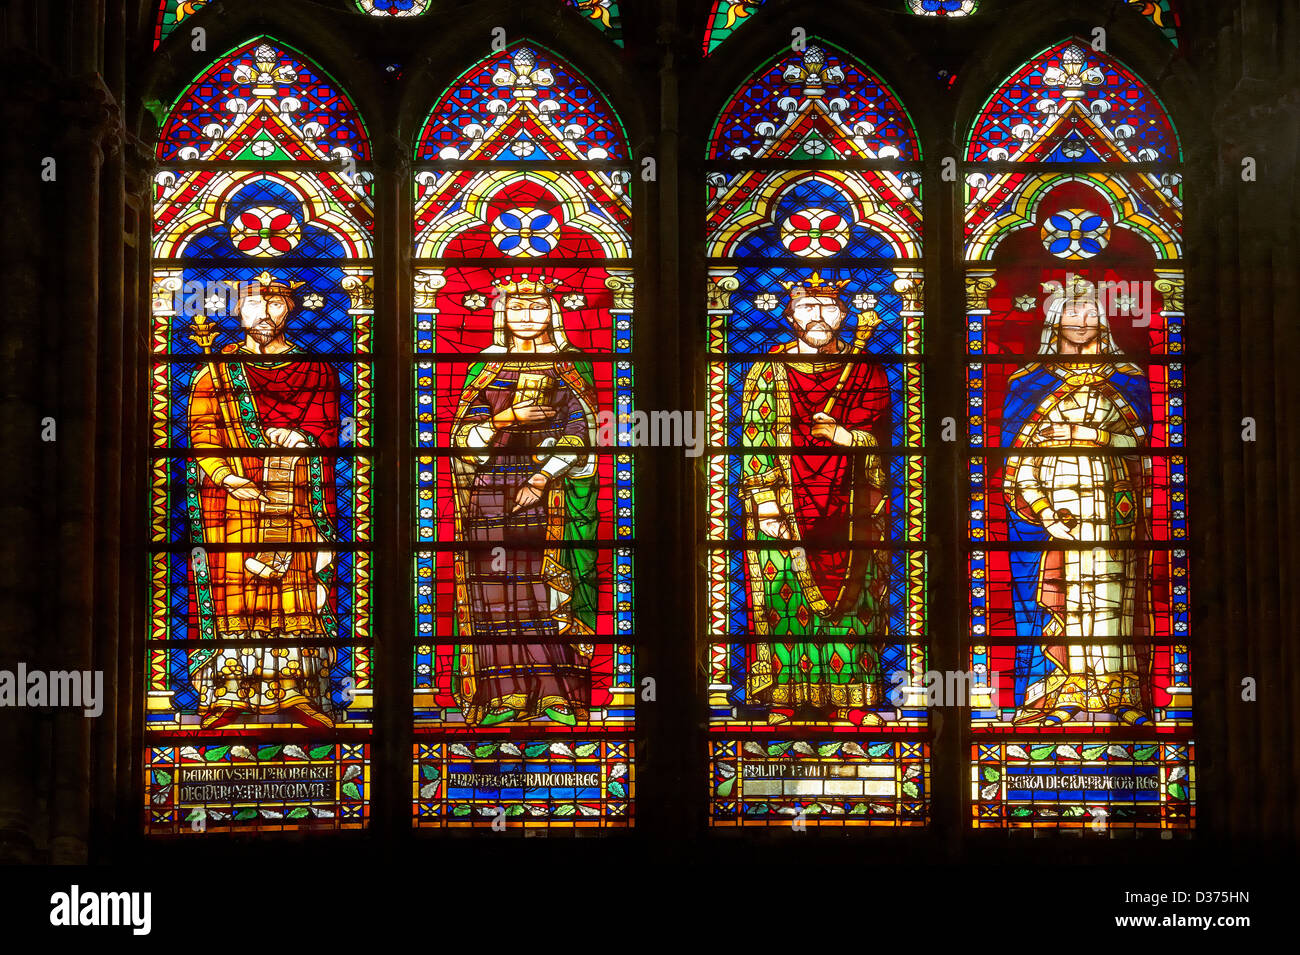 Medieval Gothic Stained Glass Window Showing The Kings Of France Cathedral Basilica Saint Denis